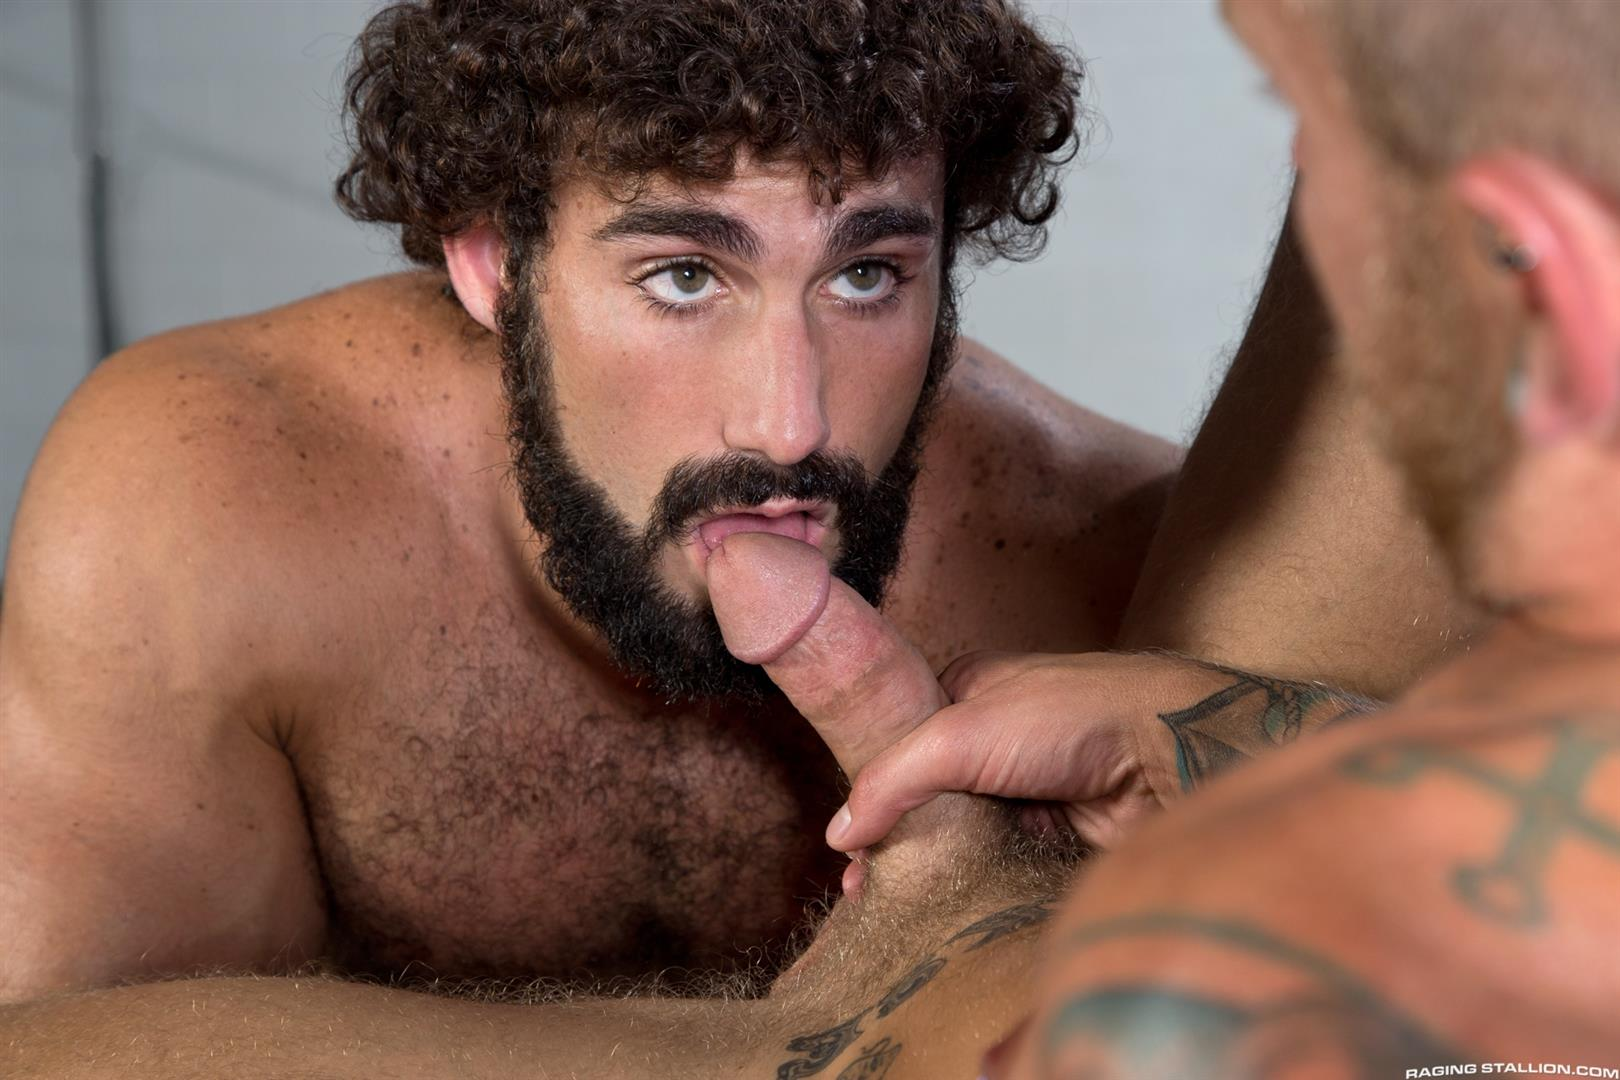 Raging-Stallion-Jaxon-Colt-and-Jaxton-Wheeler-Hairy-Muscle-Hunk-Fucking-A-Tight-Ass-Amateur-Gay-Porn-05 Hairy Muscle Hunk Jaxton Wheeler Grinding A Tight Ass